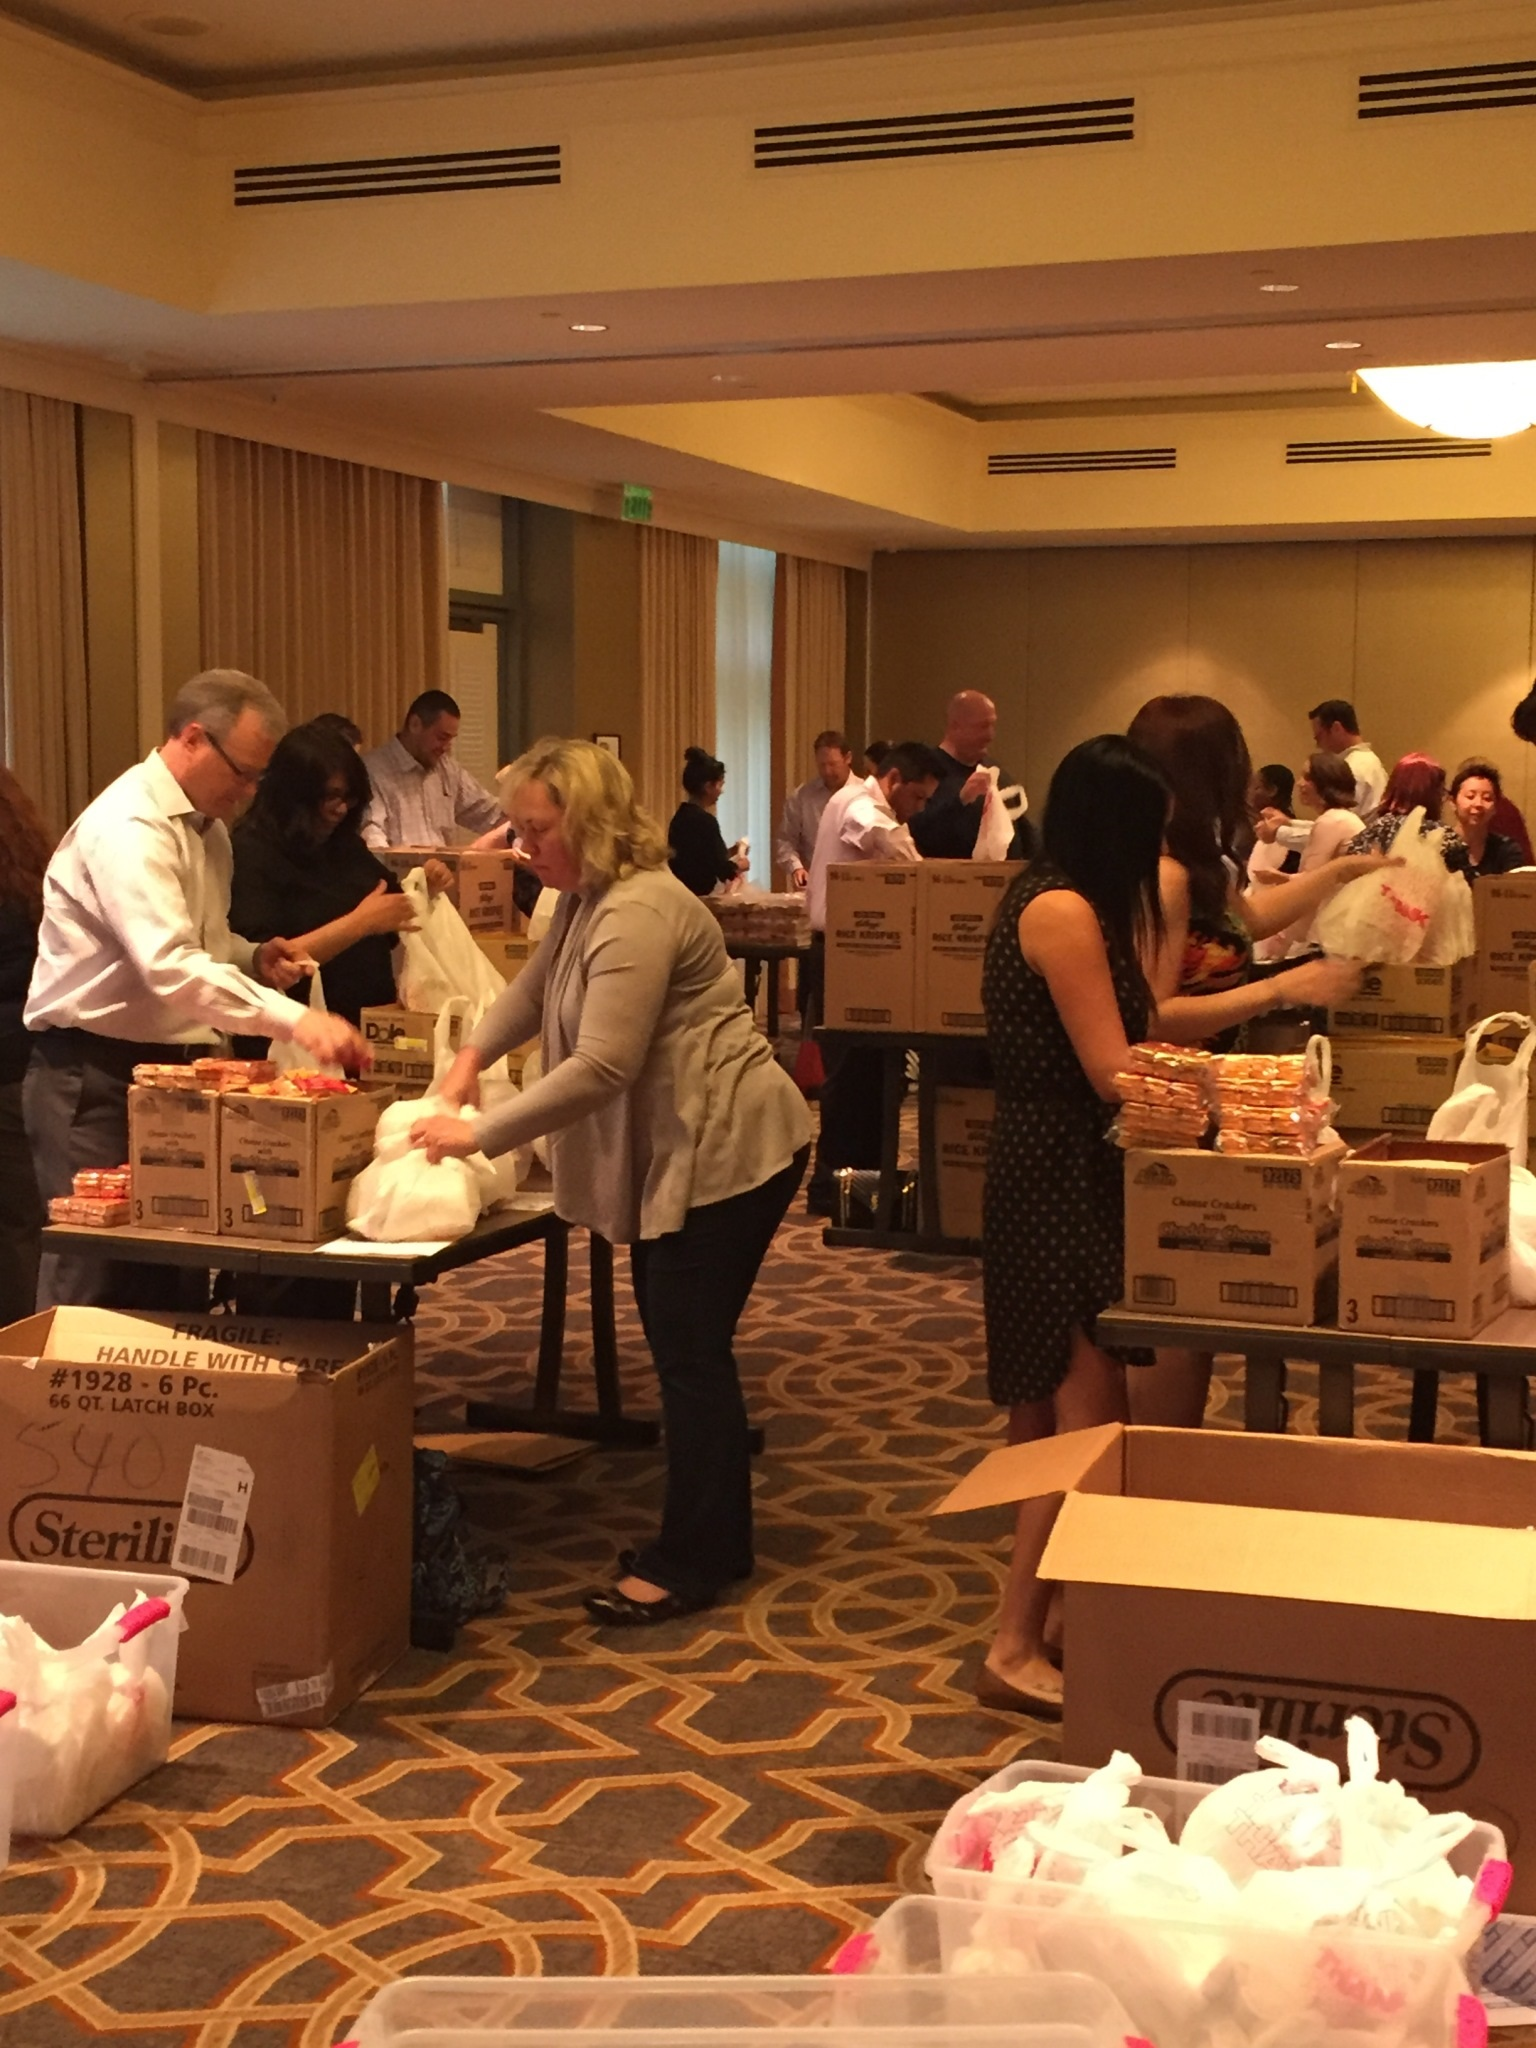 50 Anthem volunteers packaged 3,000 pounds of food which will be provided to 150 children at the Fuqua Boys & Girls Club.